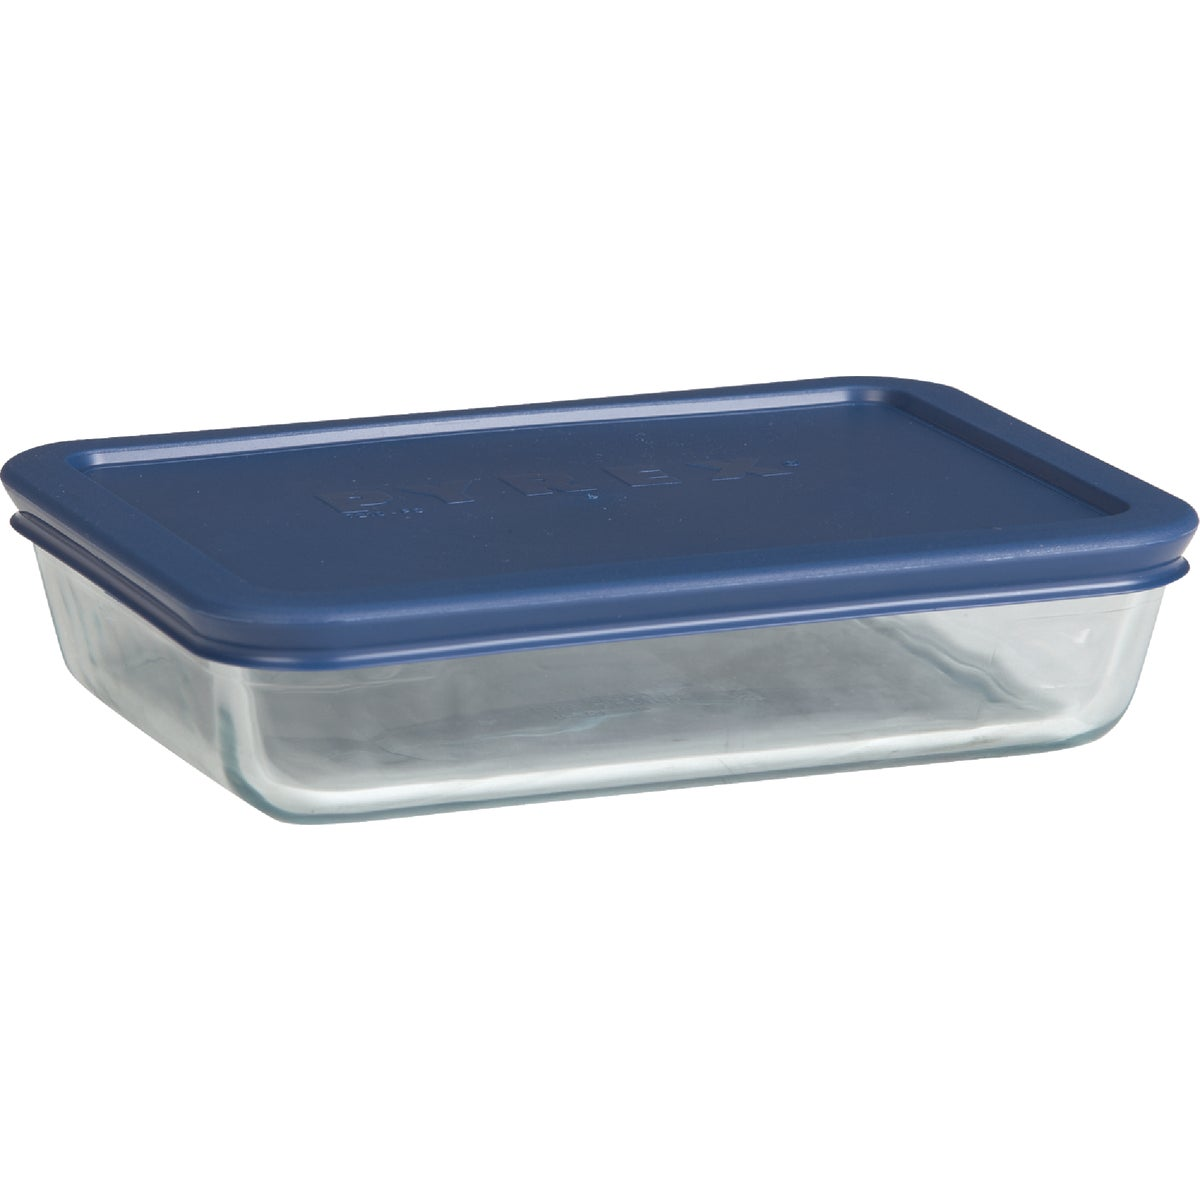 3-1/2CUP RECTANGLE DISH - 6017471 by World Kitchen